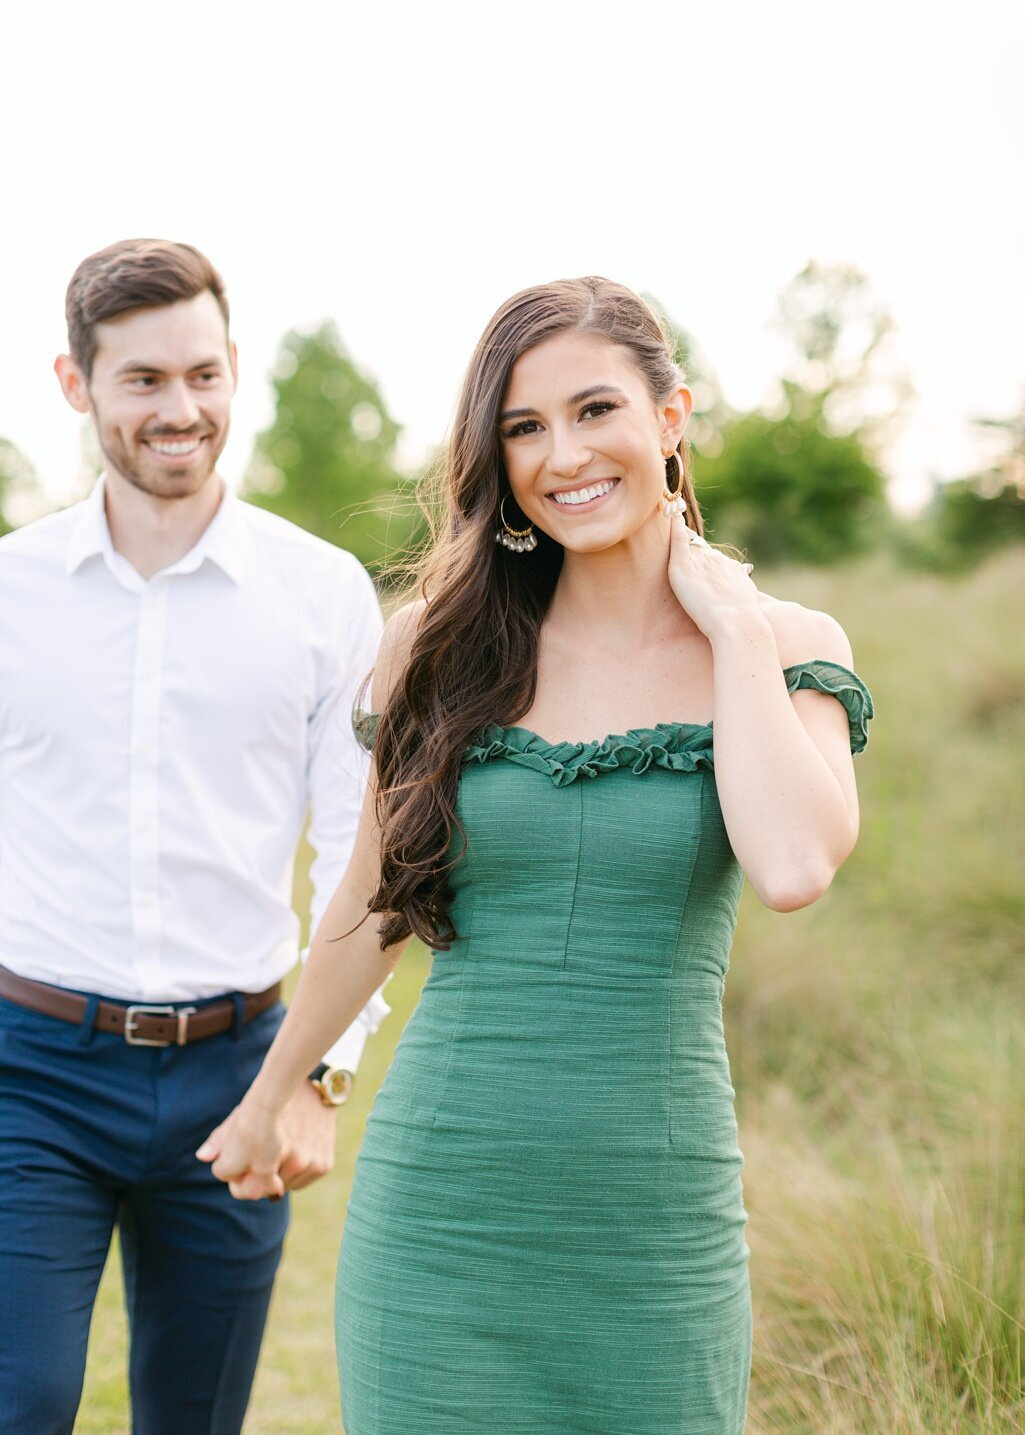 Jessie-Barksdale-Photography_birmingham-alabama-wedding-photographer_054